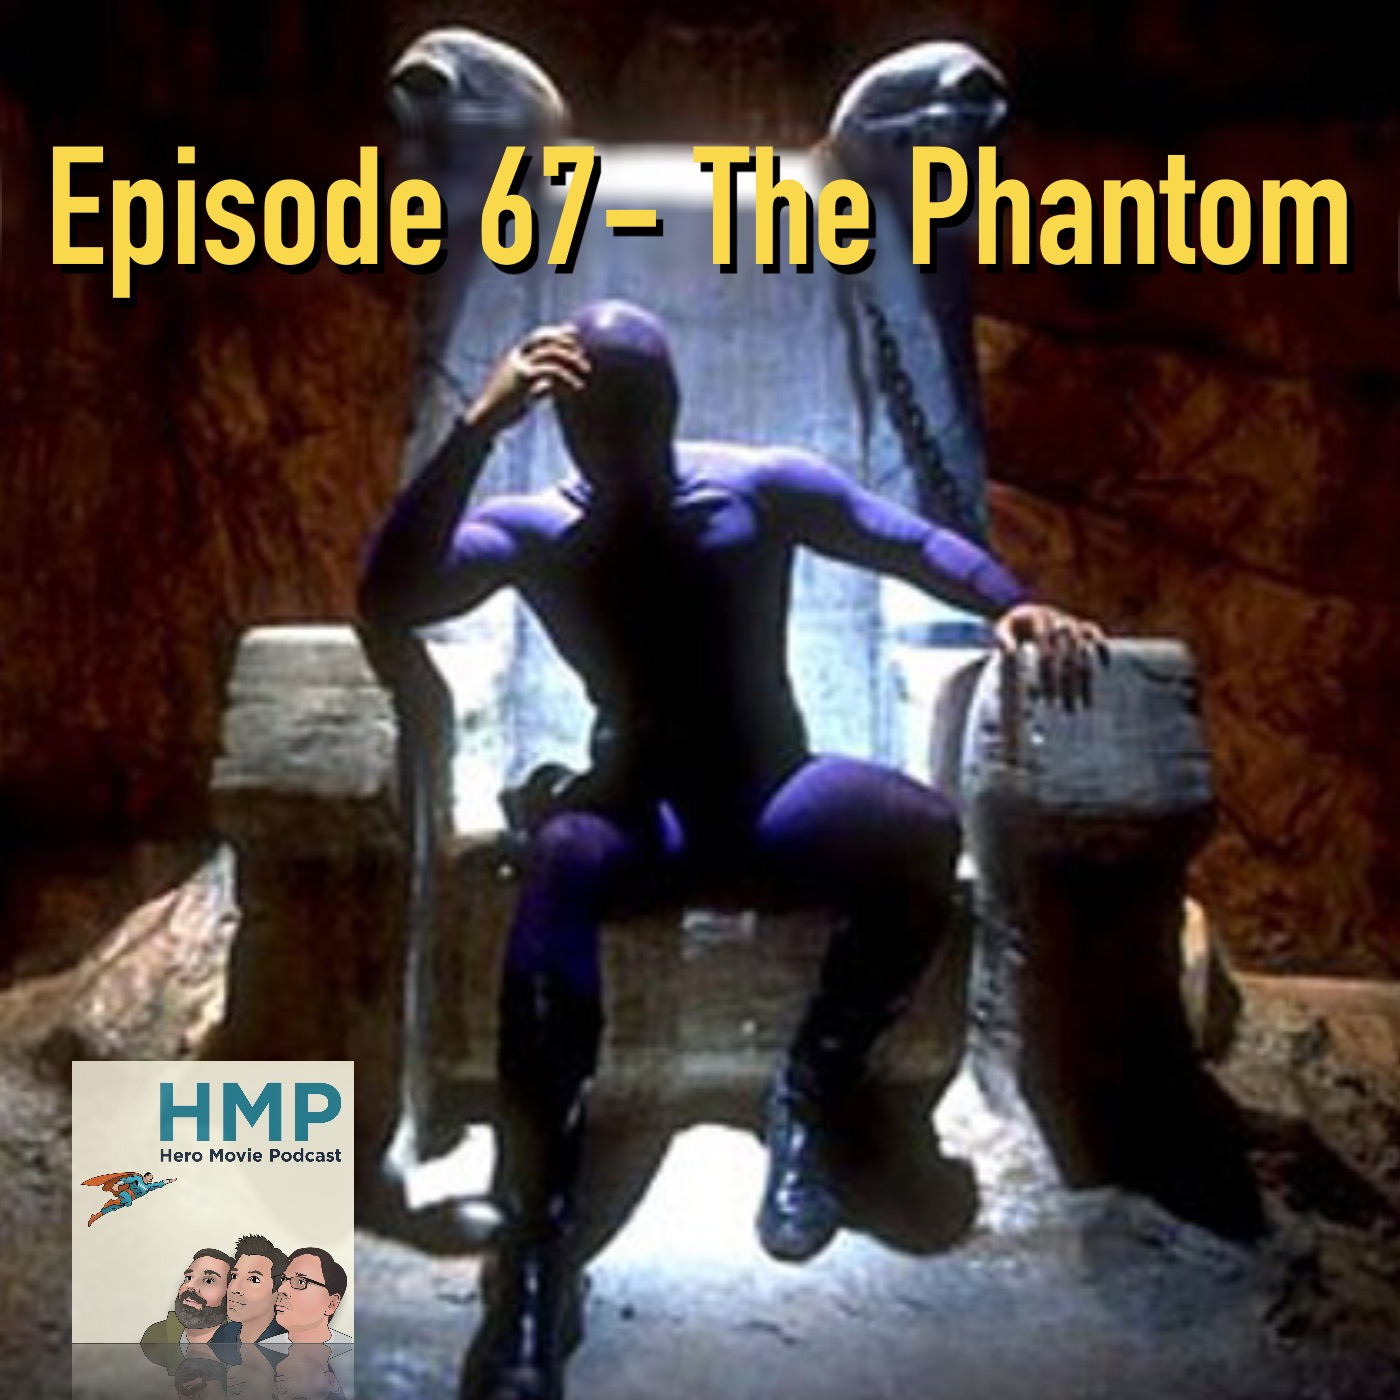 Episode 67- The Phantom